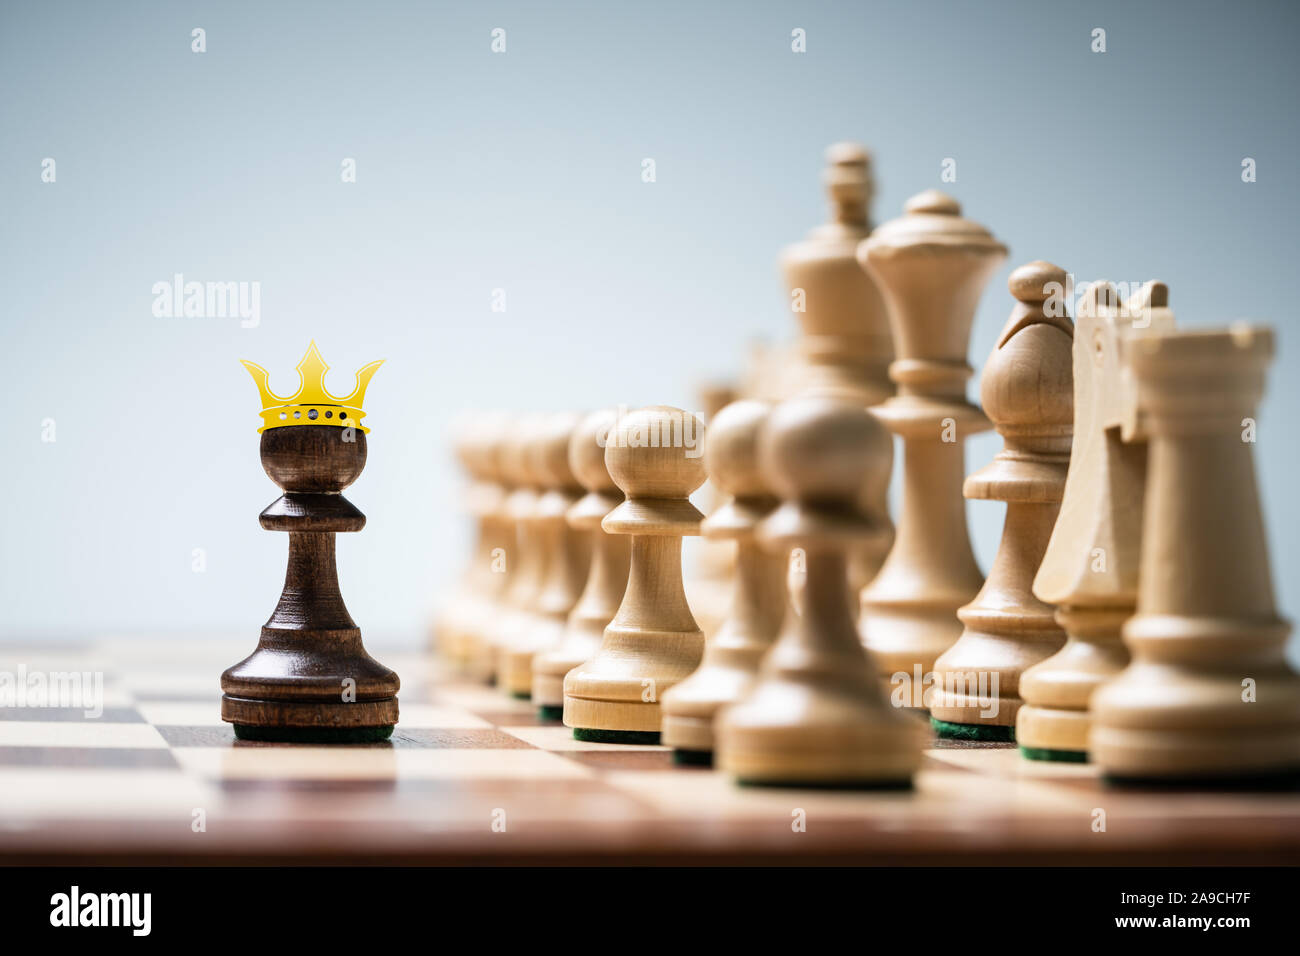 Row Of Chess Pieces On Board Against Blue Background Stock Photo